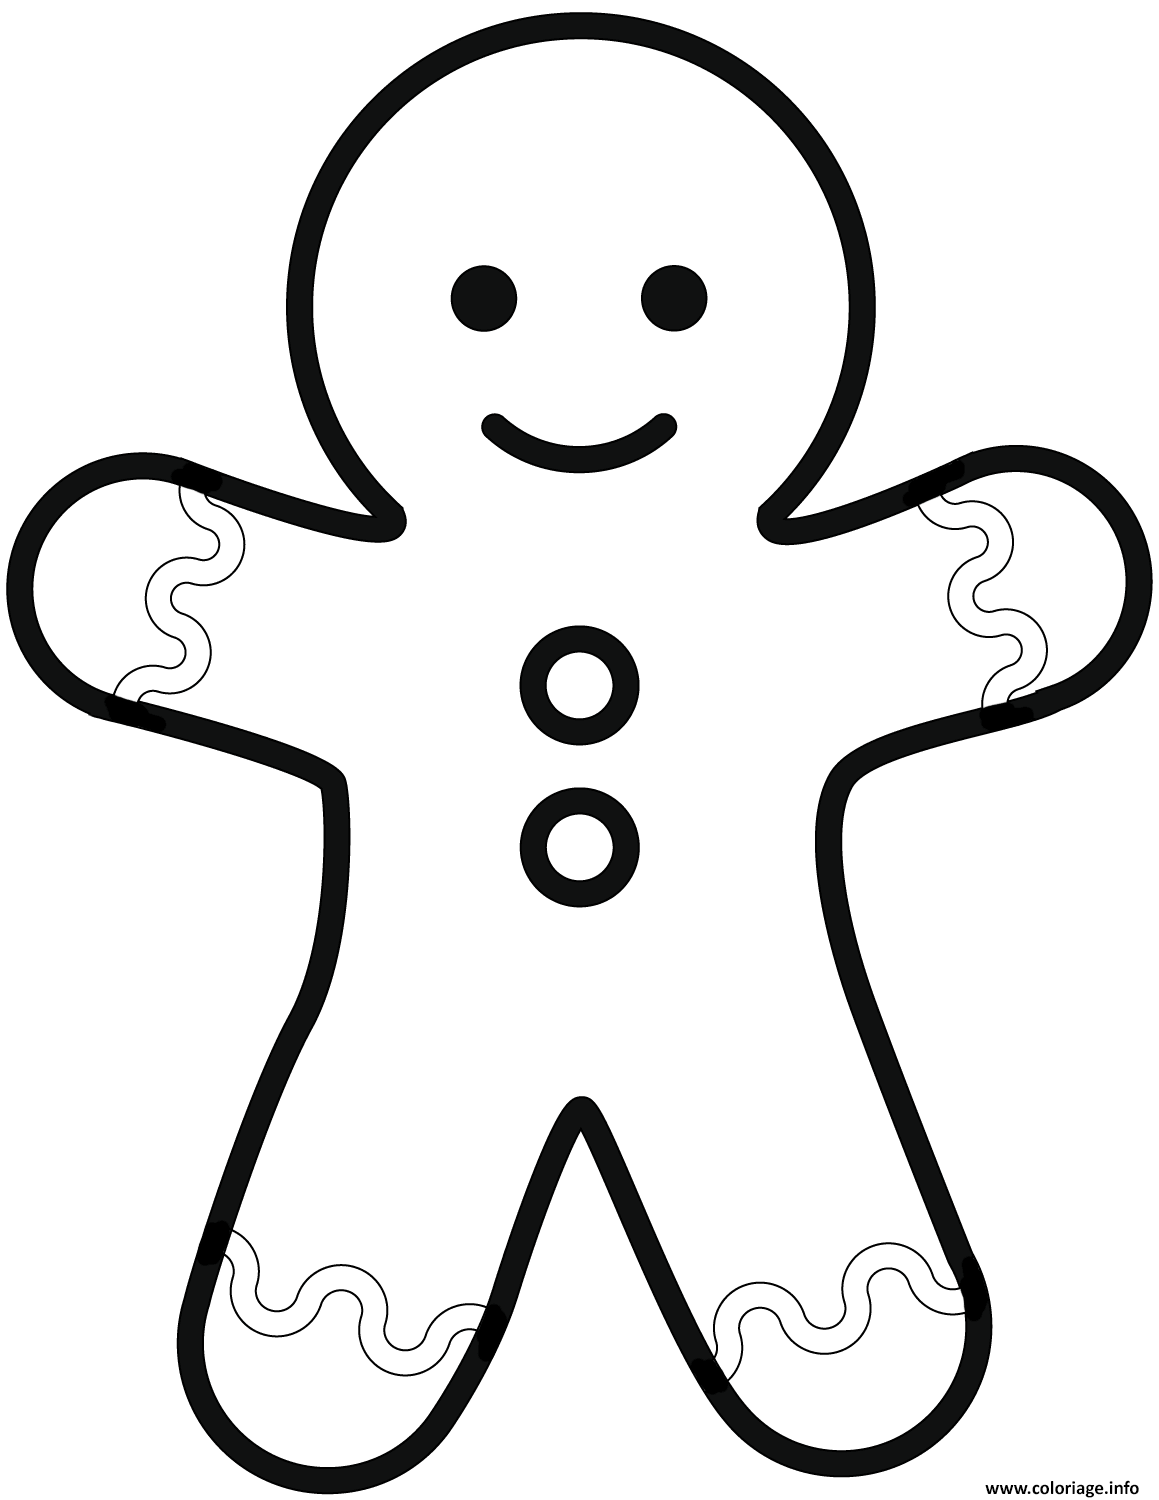 Coloriage Simple Gingerbread Man Dessin